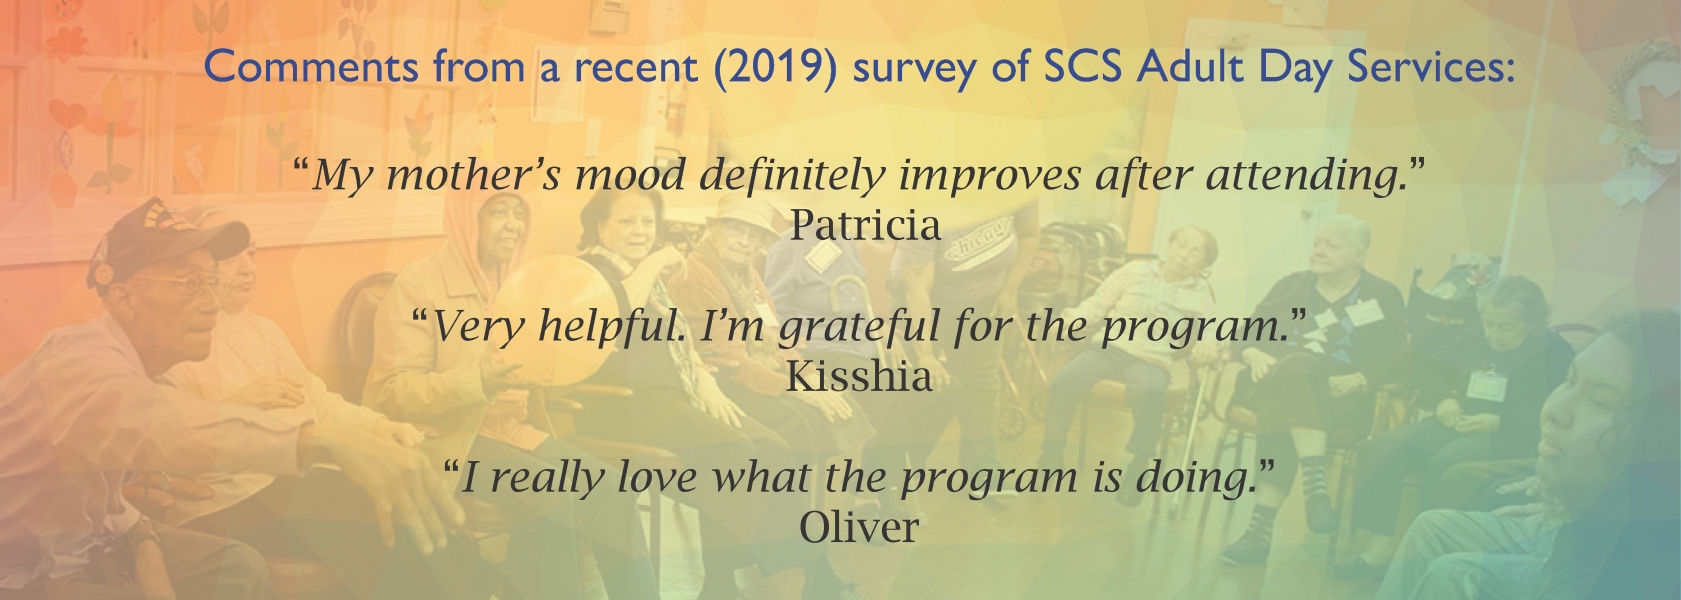 Positive quotes from a recent Adult Day Program Survey